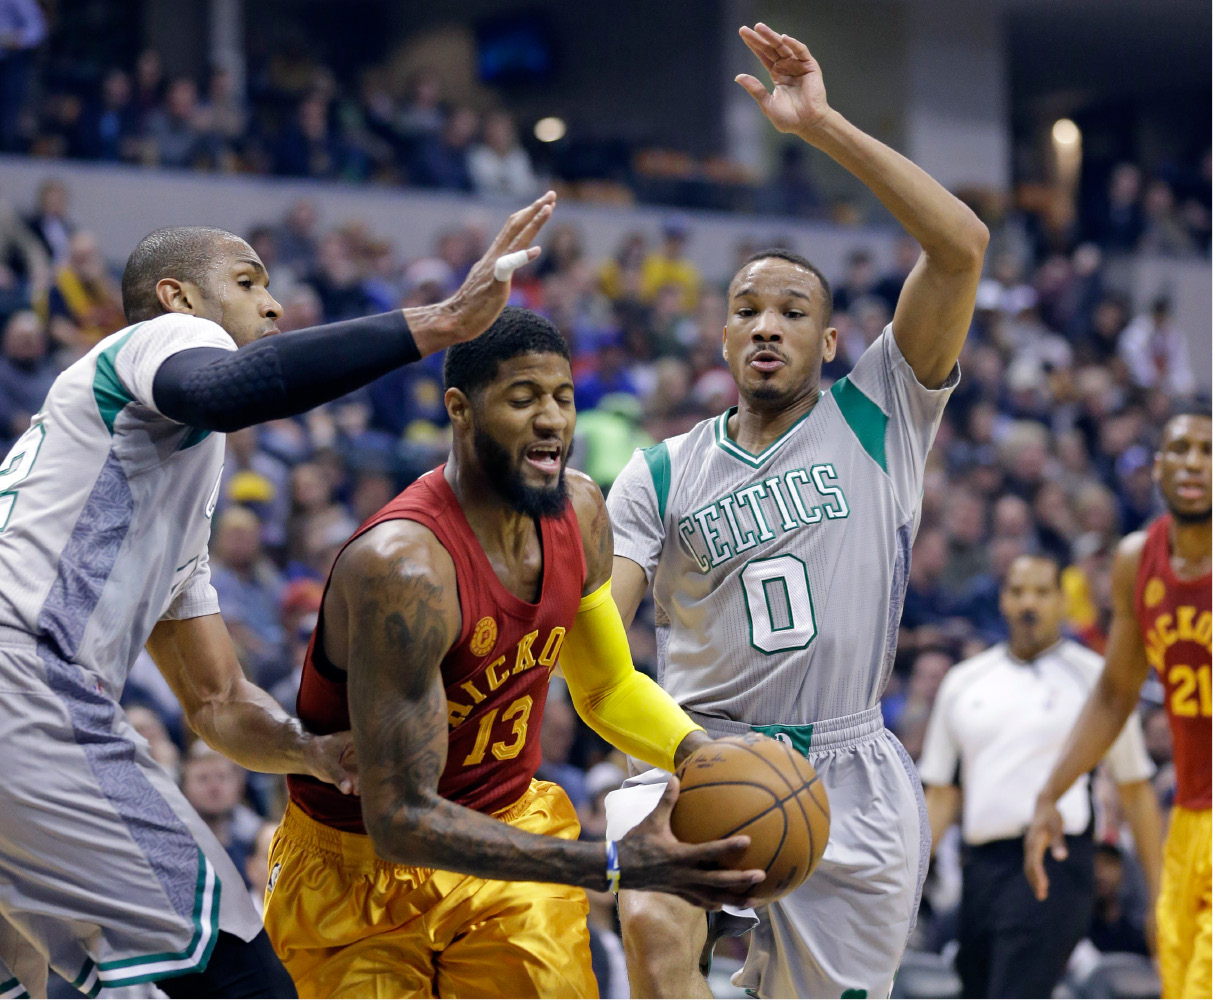 Indiana Pacers forward Paul George (13) cuts between Boston Celtics center Al Horford (42) and guard Avery Bradley (0) during the first half of an NBA basketball game in Indianapolis, Thursday, Dec. 22, 2016. (AP Photo/Michael Conroy)